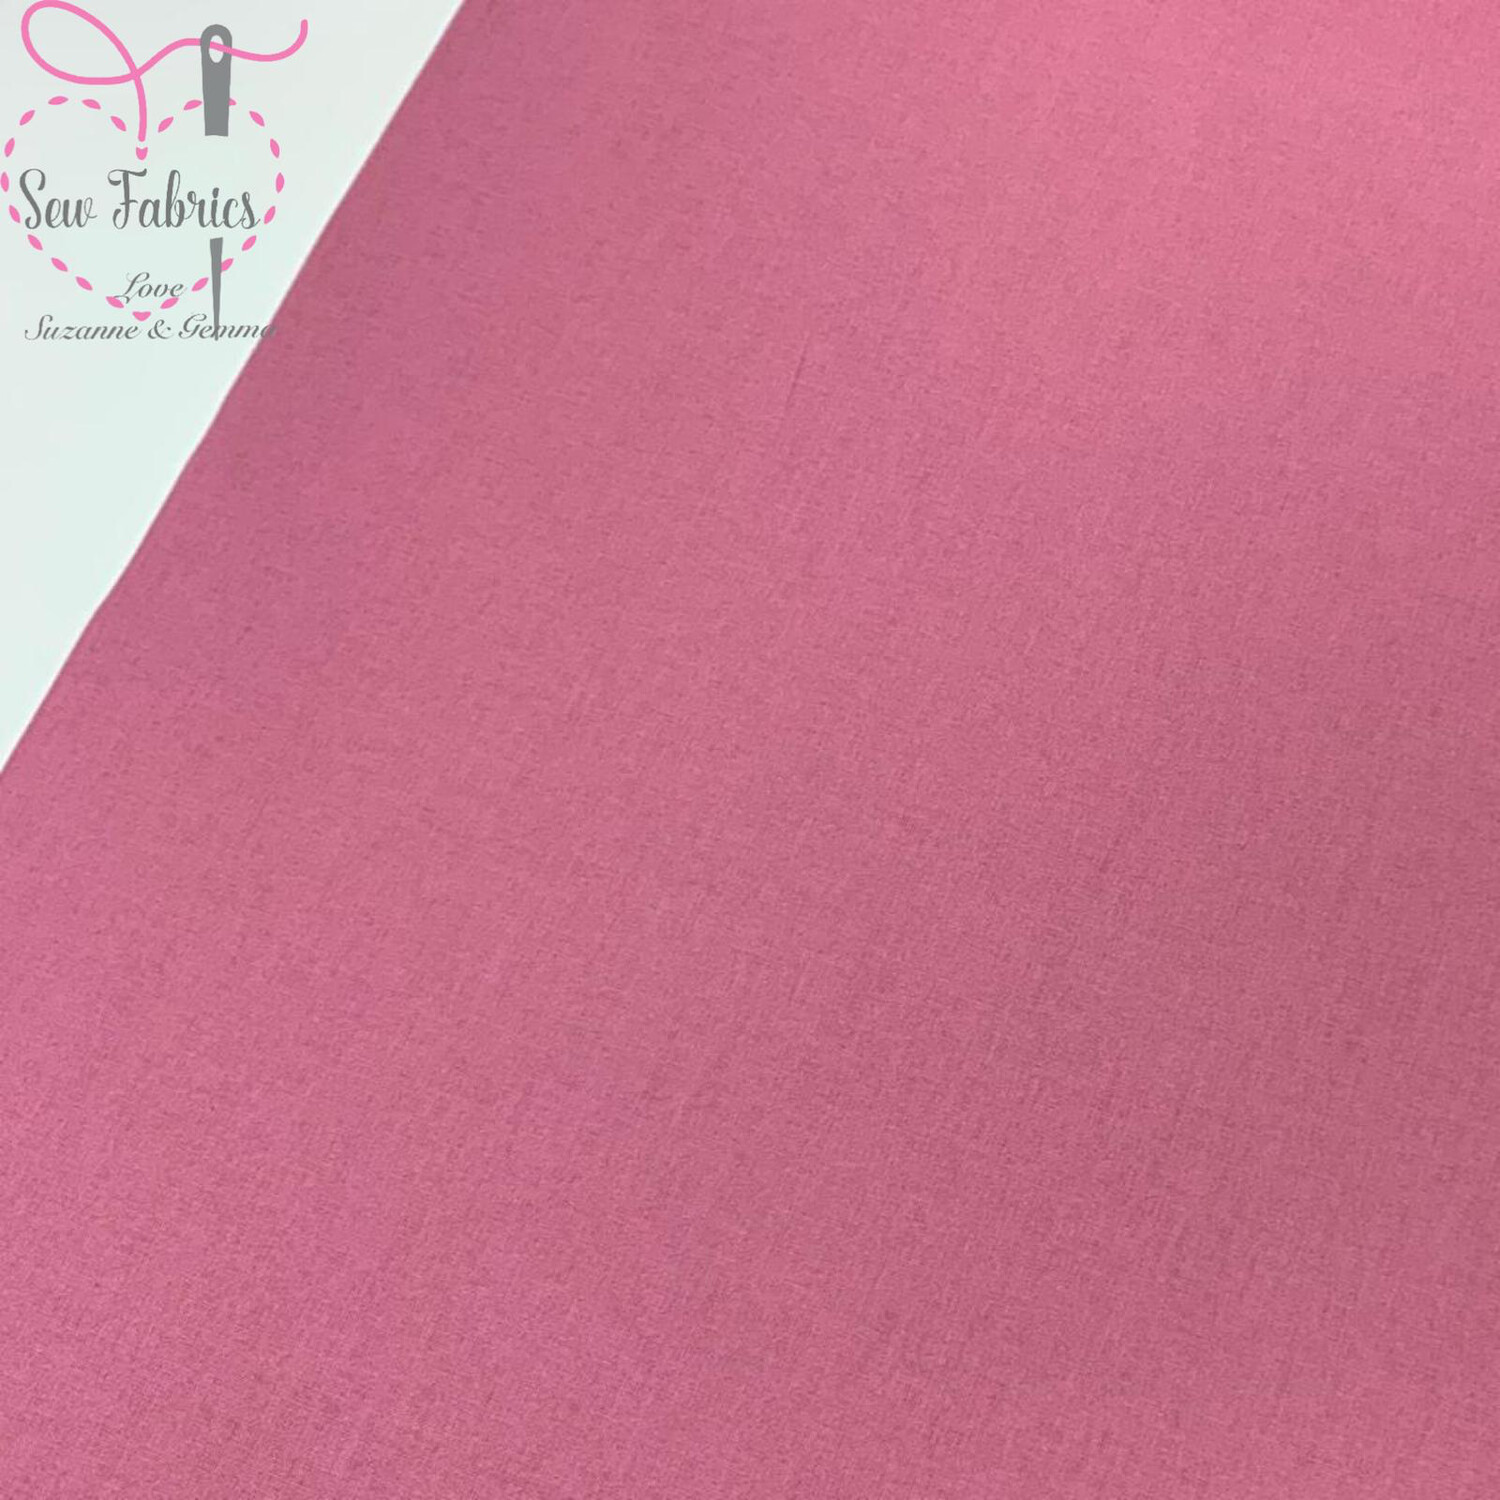 Dusty Pink 100% Craft Cotton Solid Fabric Plain Material